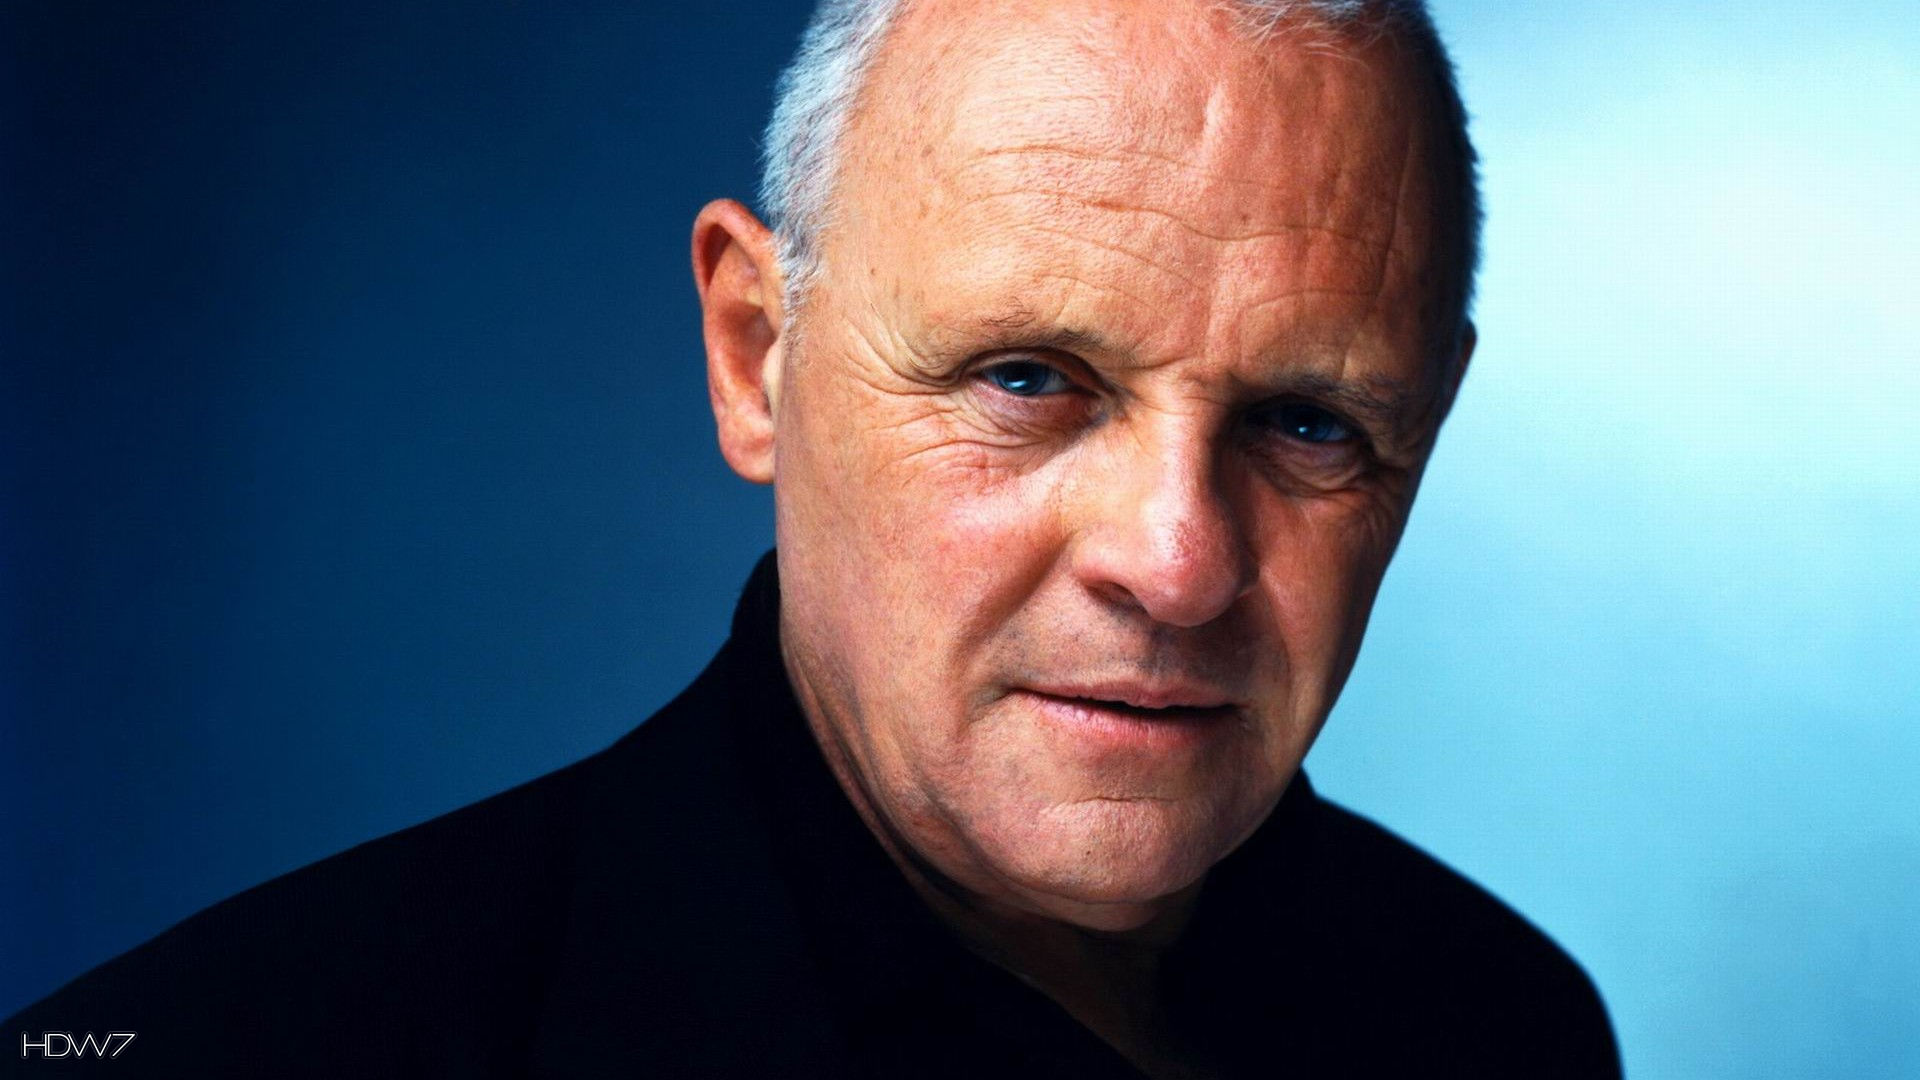 actor anthony hopkins 1080p